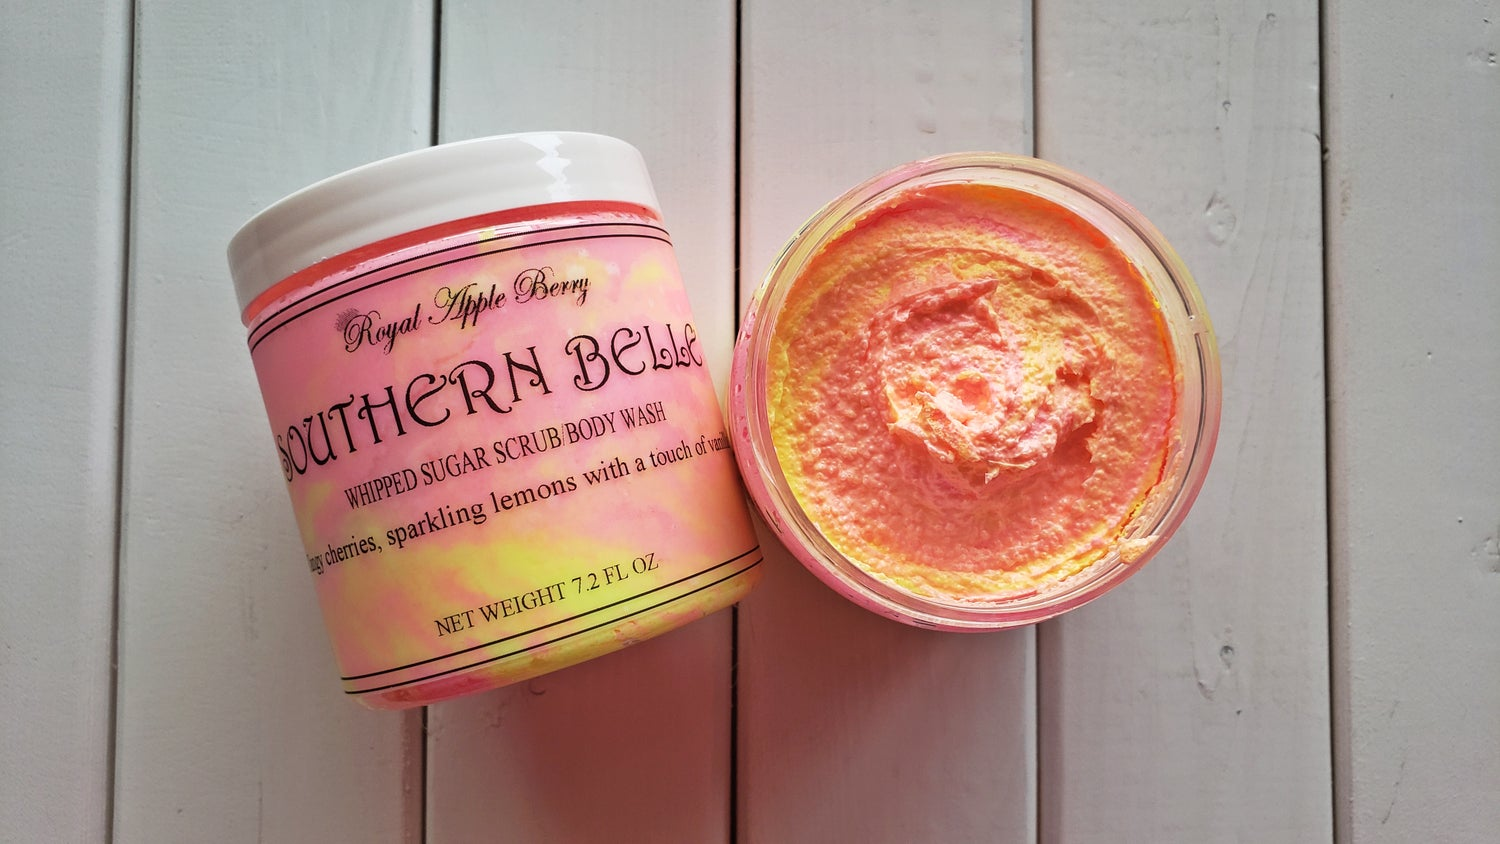 Image of SOUTHERN BELLE WHIPPED SUGAR SCRUB BODY WASH